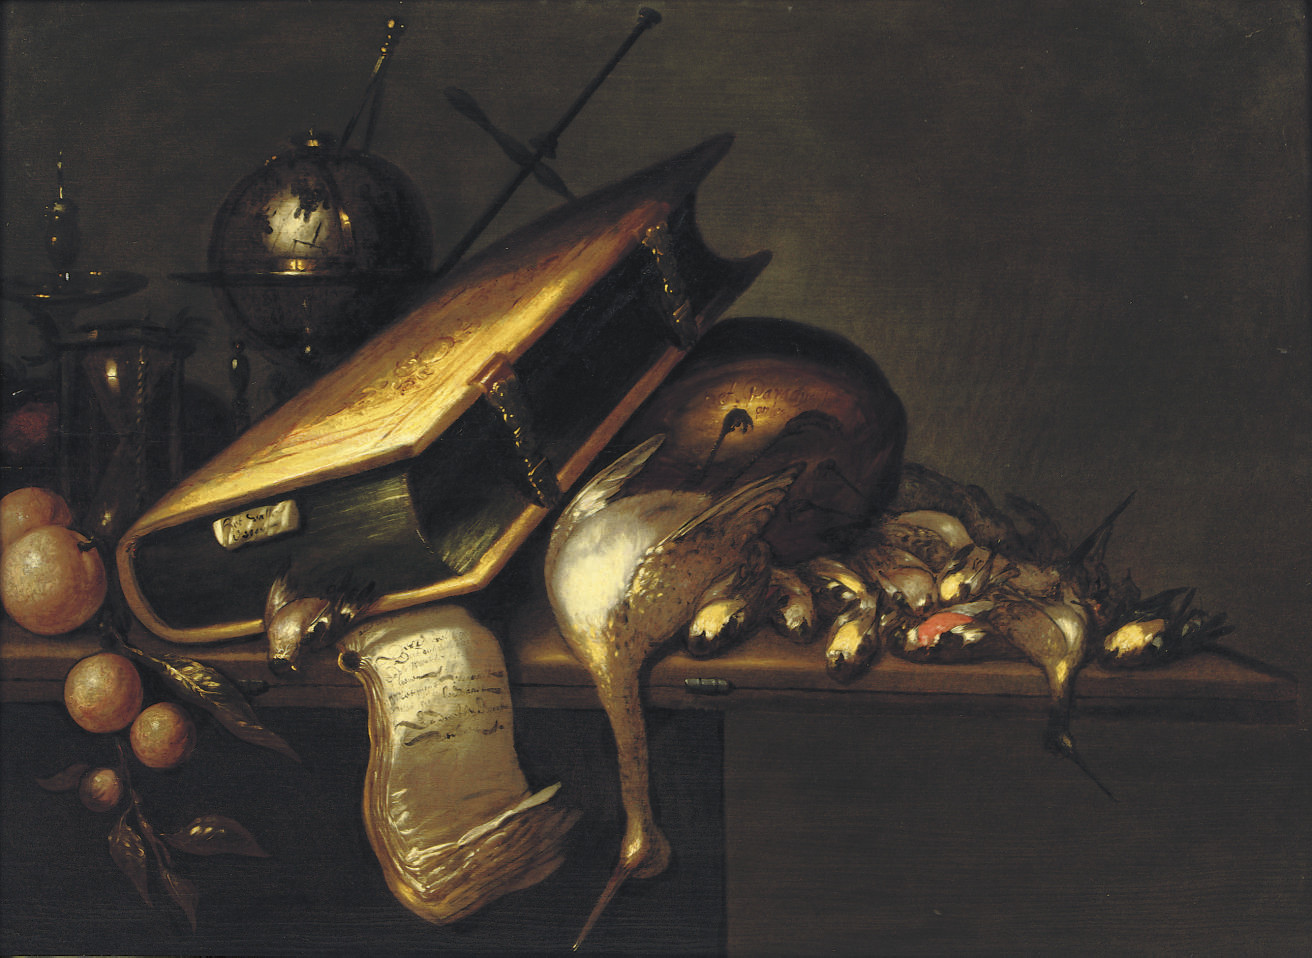 A 'vanitas' with a book, birds, oranges, a globe, a candlestick and an hourglass on a wooden table